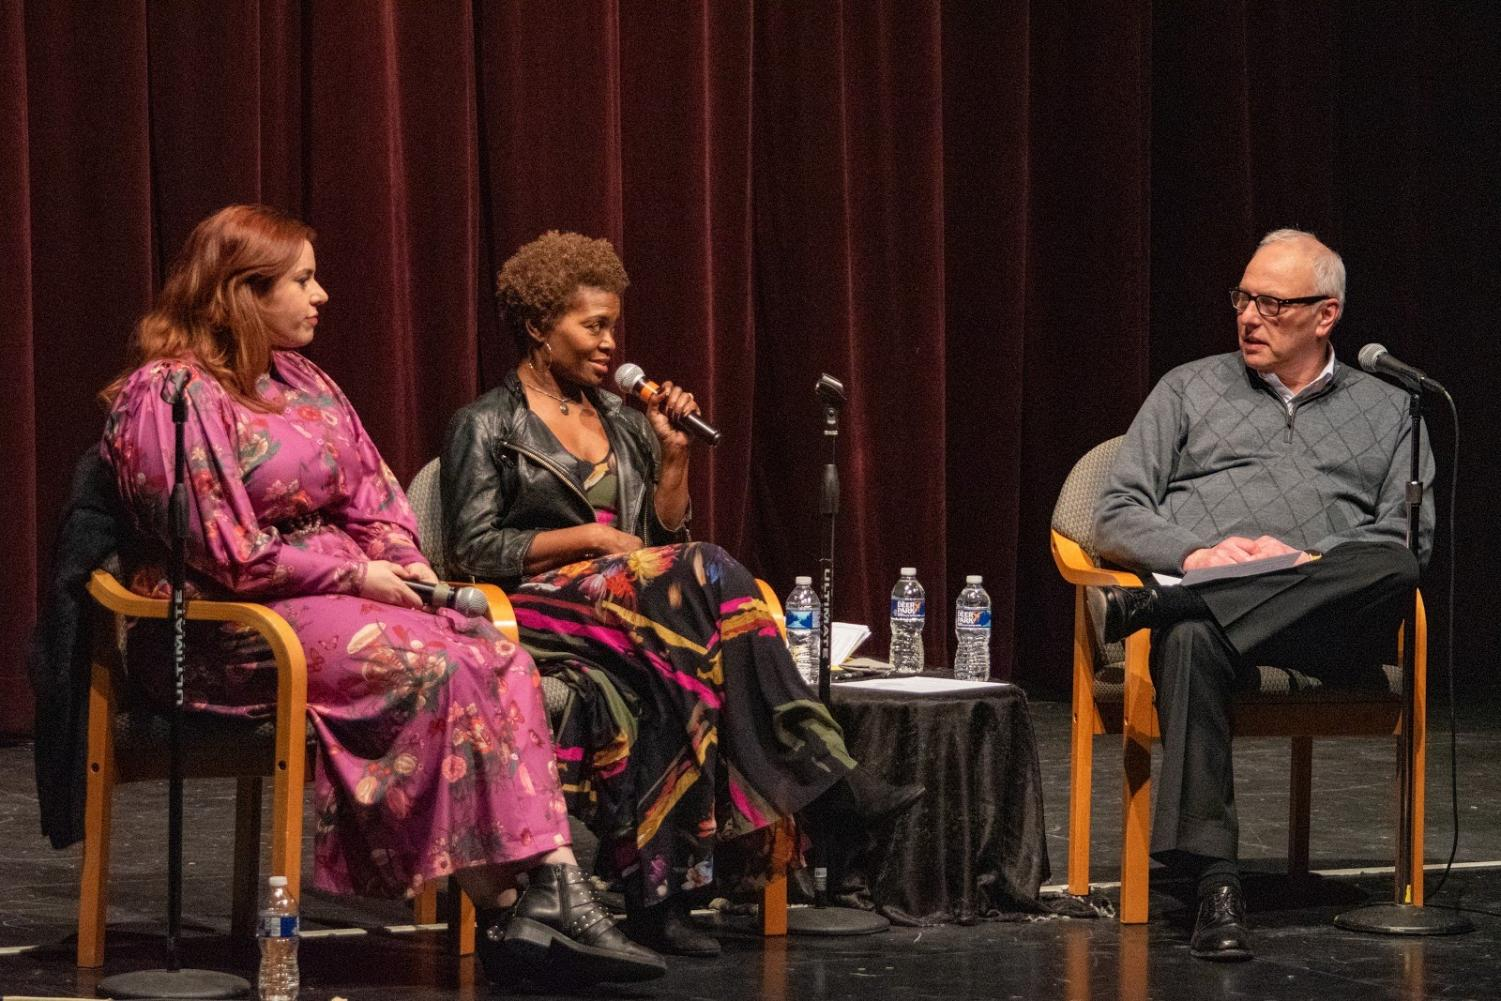 CEO of Shugoll Research Mark Shugoll talks to Broadway stars LaChanze and Alysha Umphress about their careers.